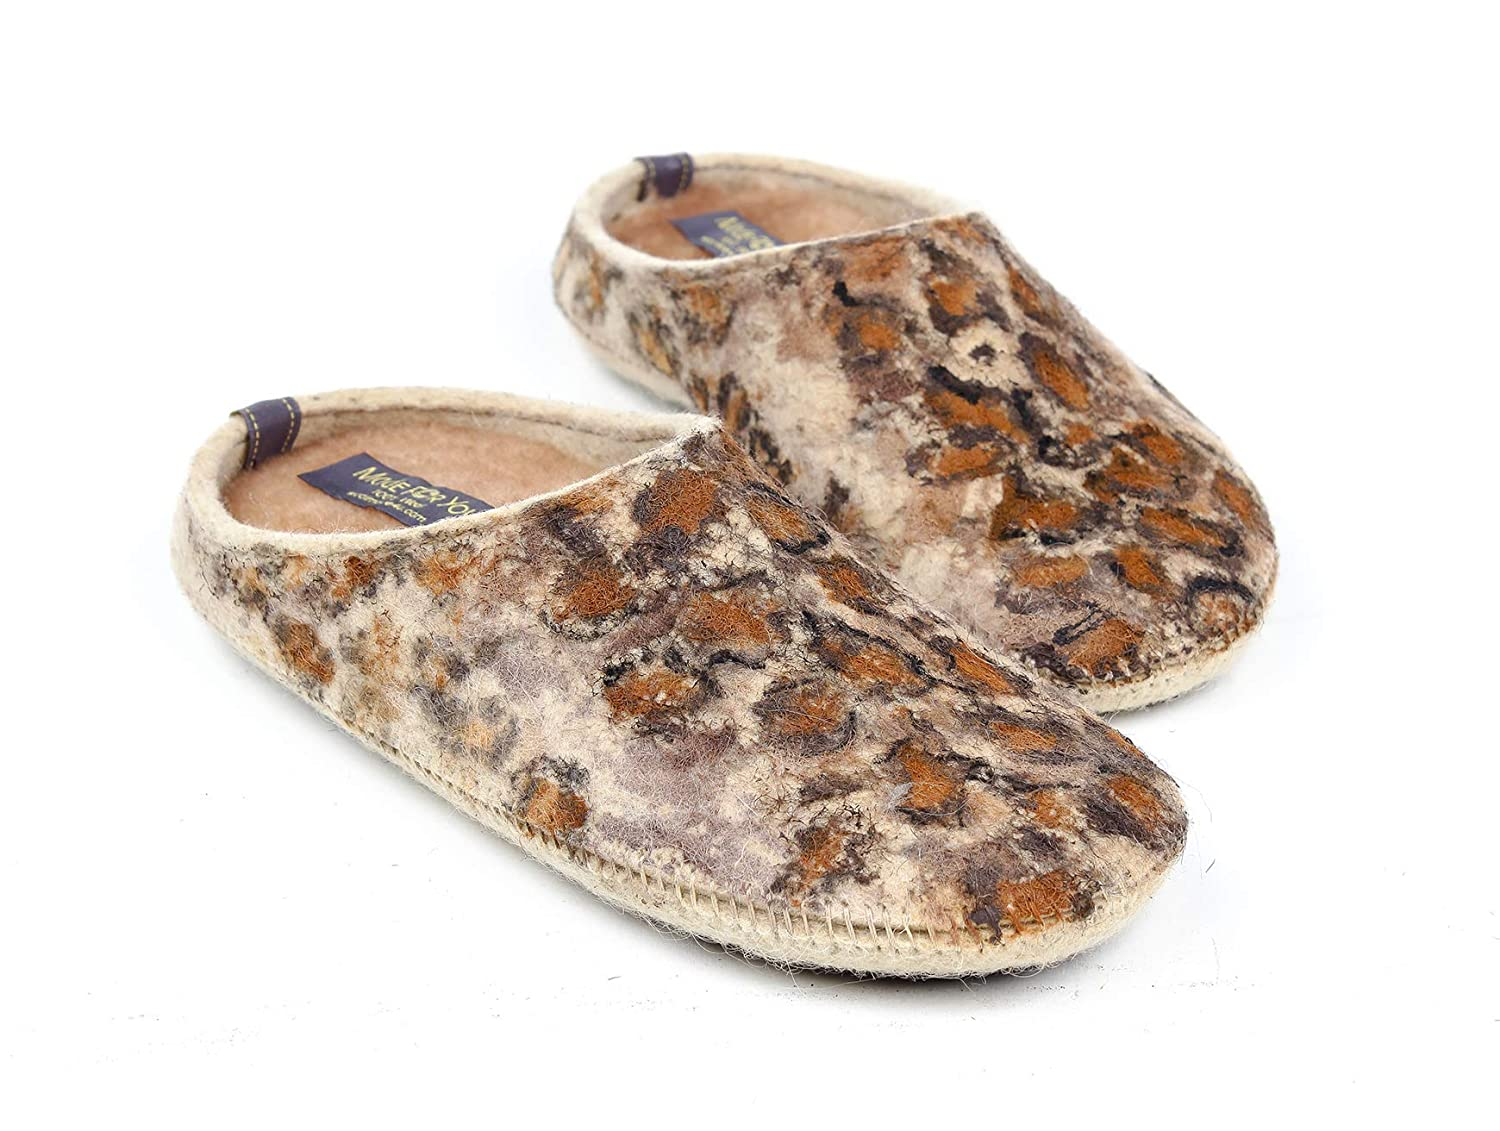 Women's wool slippers with hand-painted animal/cheetah print